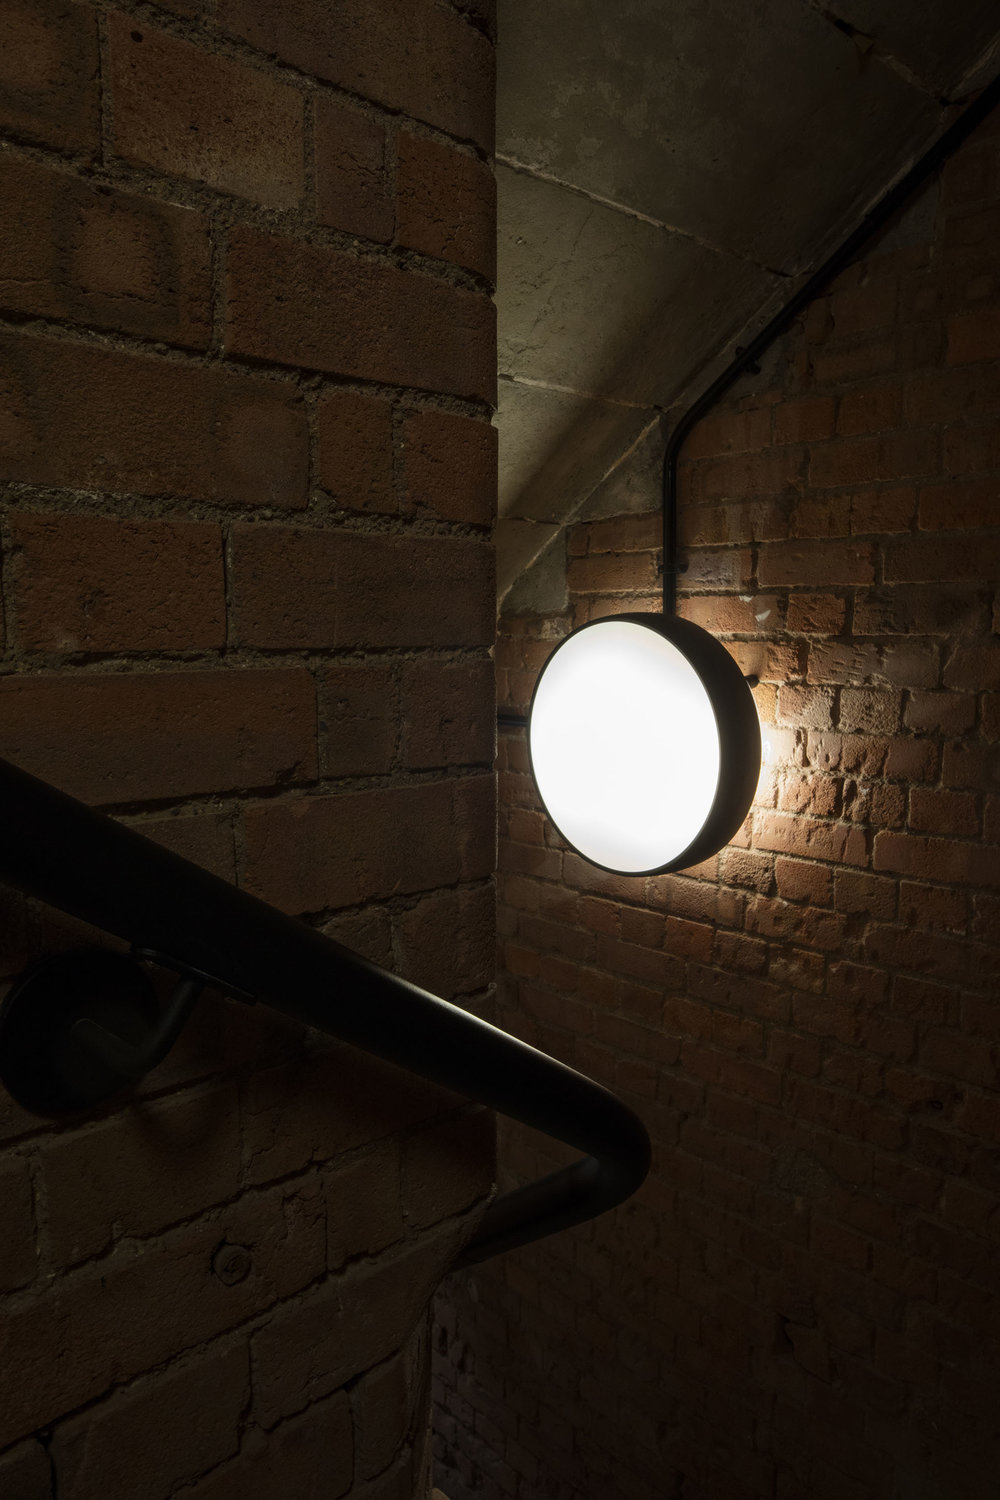 Goswell-Road-Clerkenwell-London-Office-Exposed-Brick-Stairs-Wall-Moon-Light-Architect.jpg